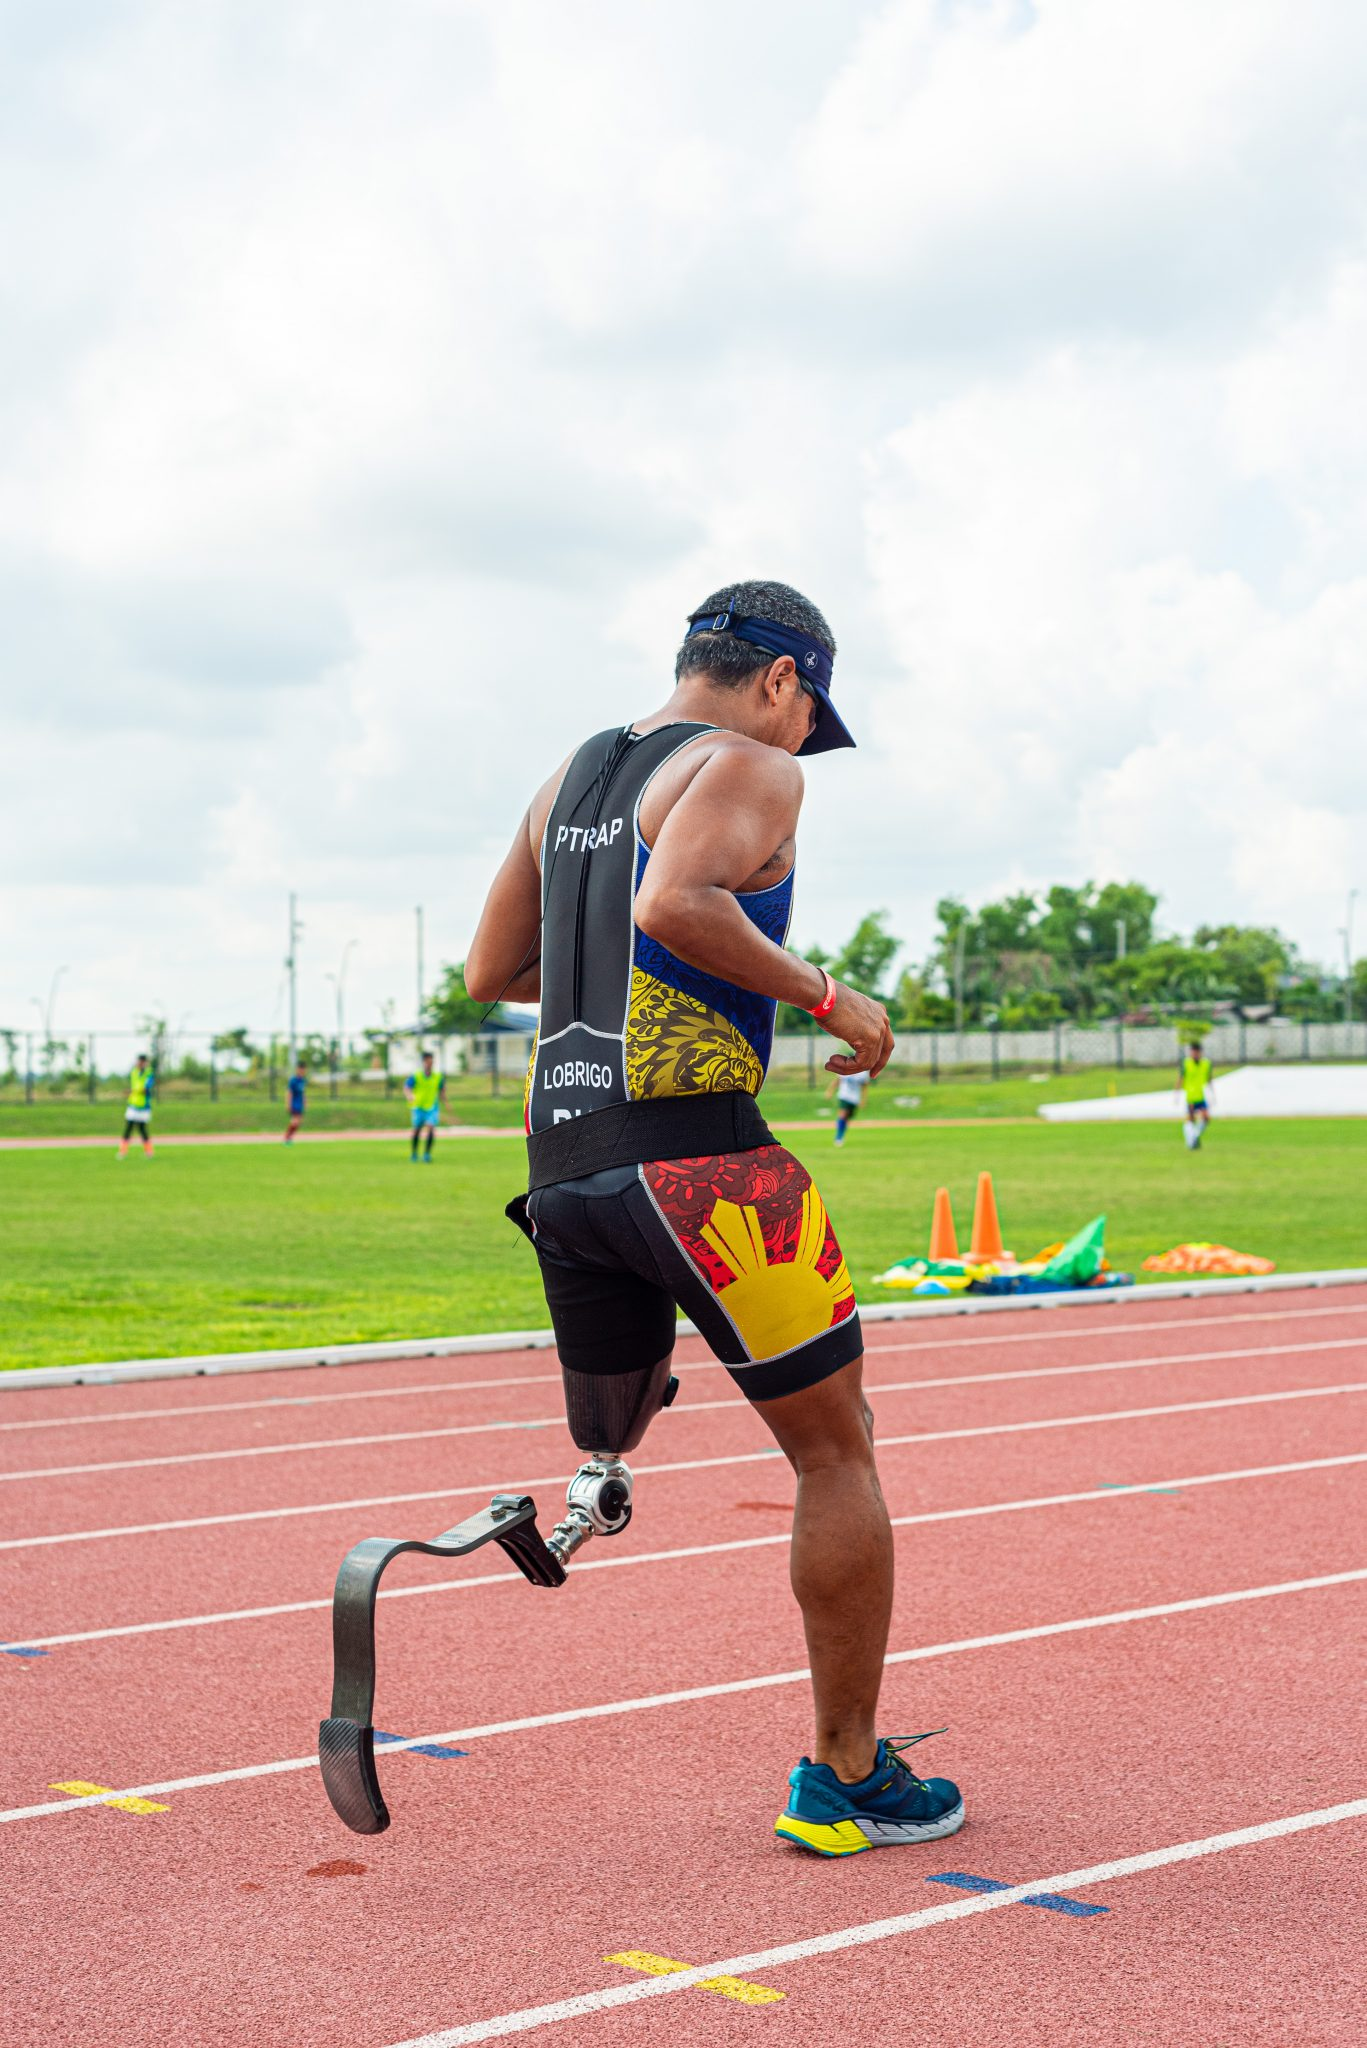 One of paratriathlete Manny Lobrigo's most recent races is the 2019 Alveo Ironman in Davao. His relay team was able to finish the course